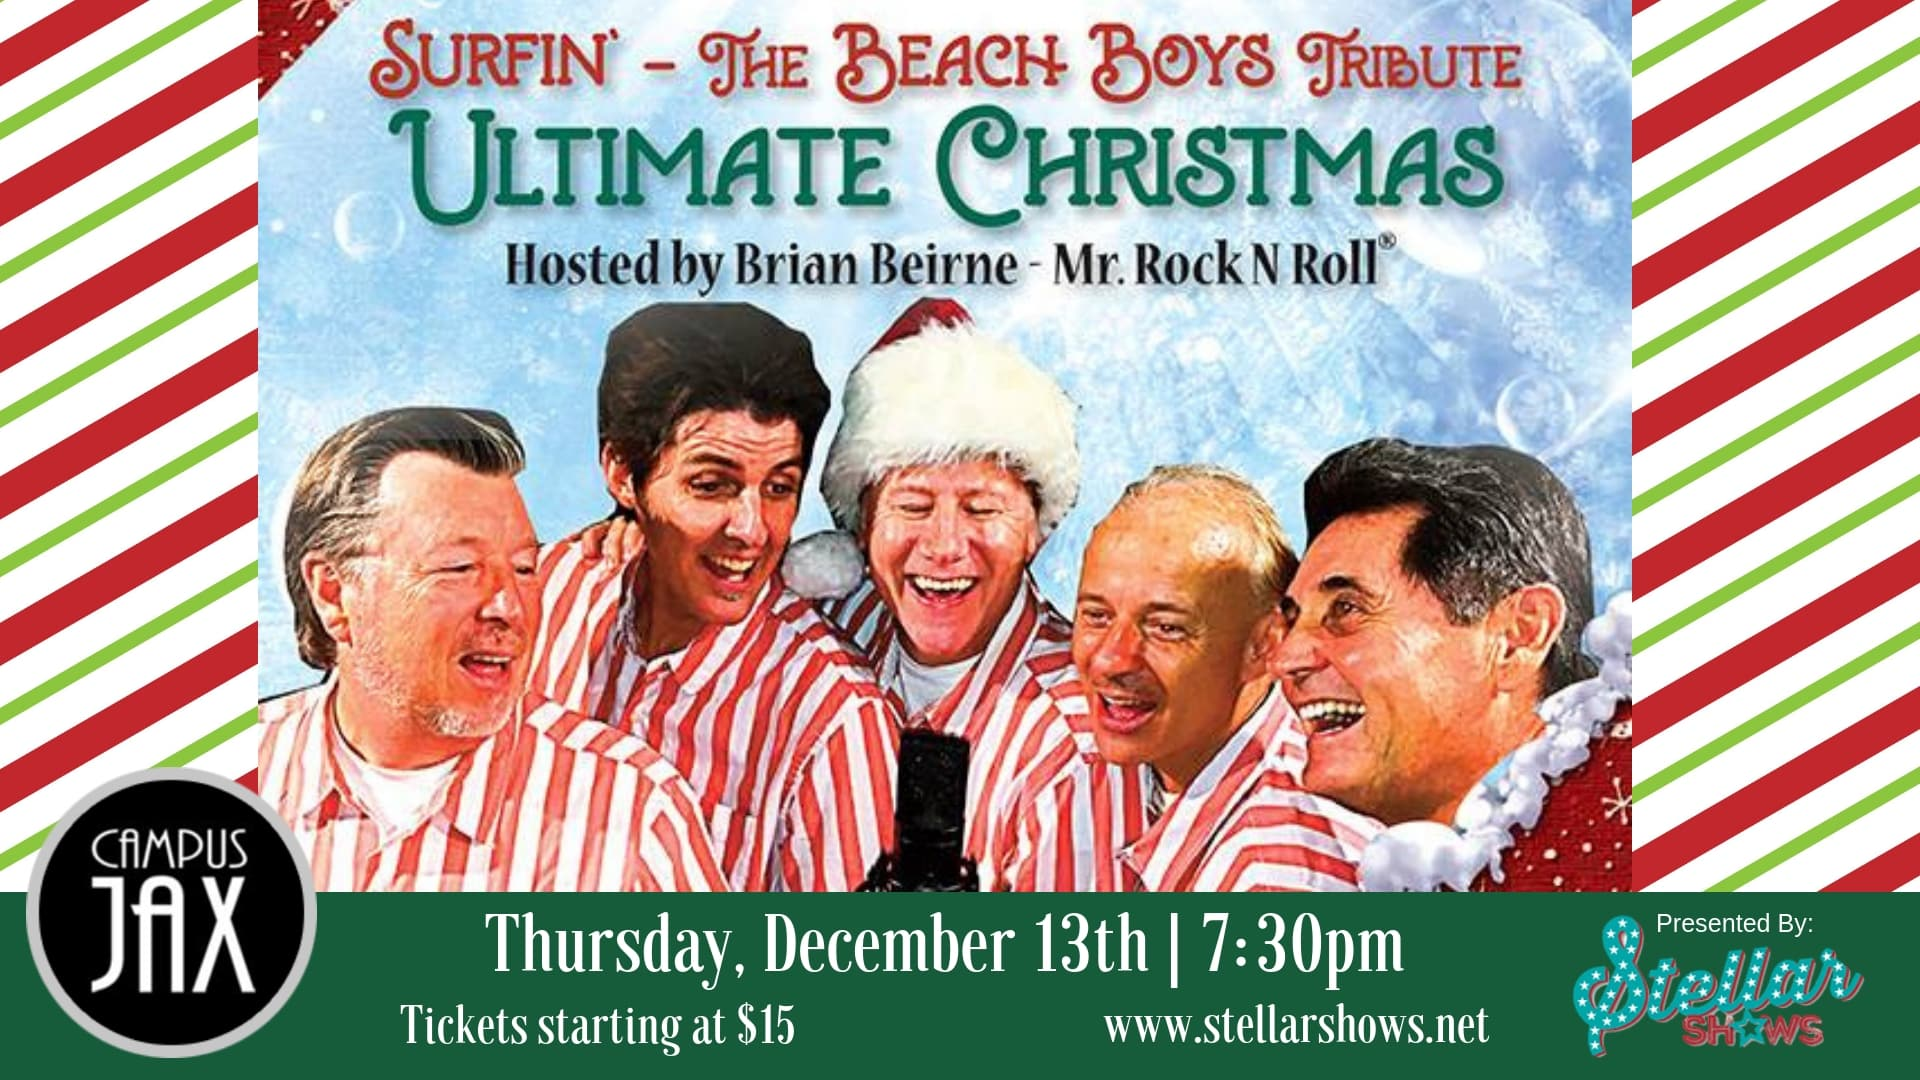 December 13 | SURFIN' - BEACH BOYS ULTIMATE CHRISTMAS! Presented By StellarShows